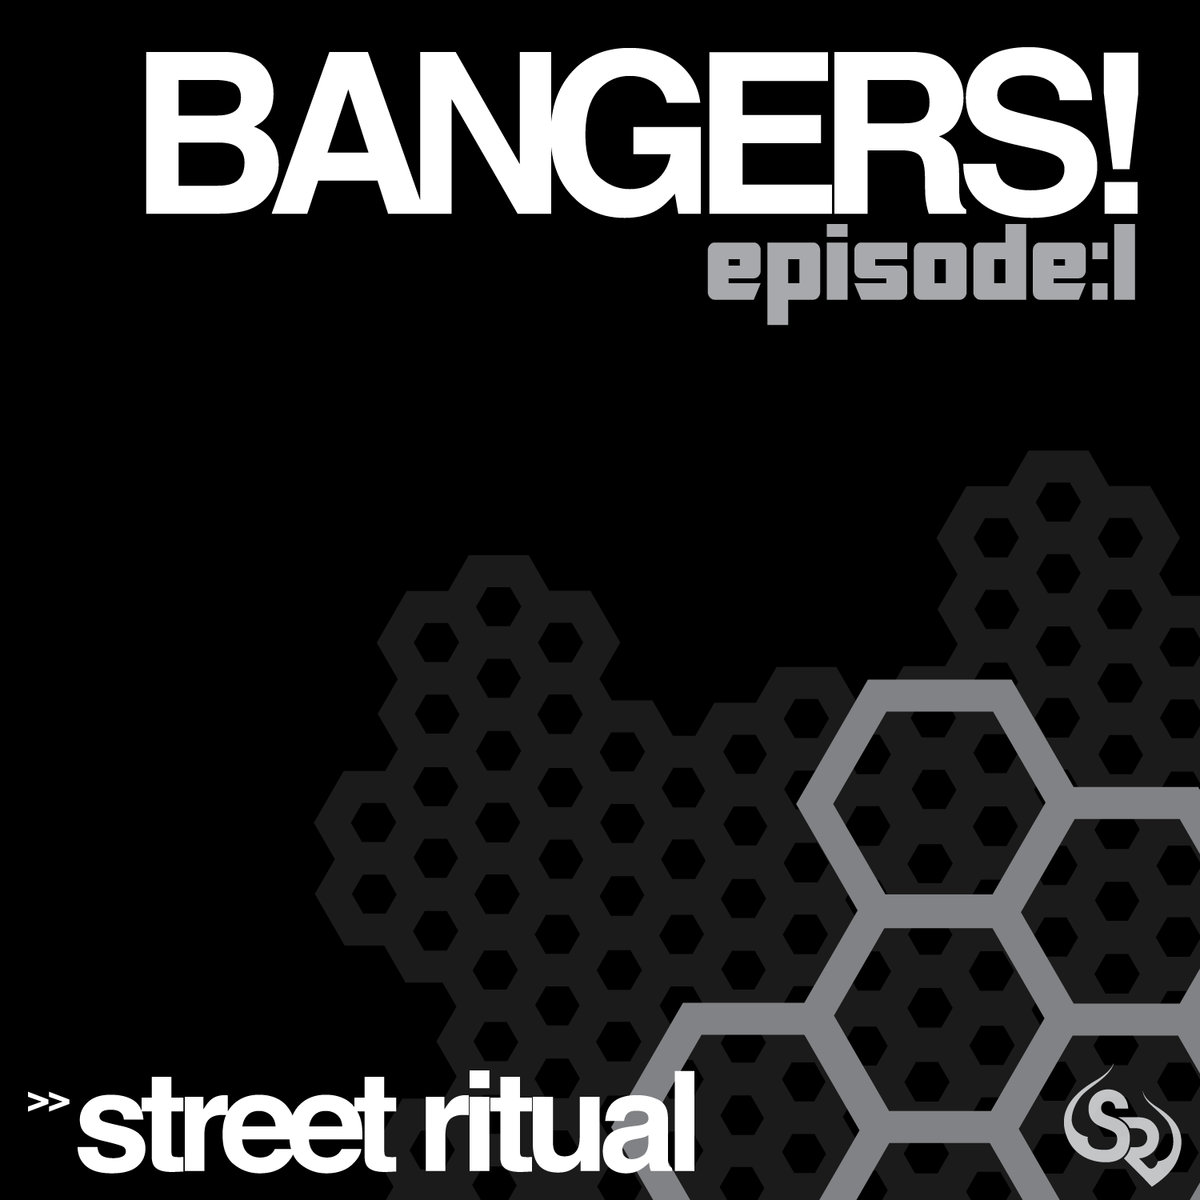 Dubvirus - Breathe (Atomic Reactor Remix) @ 'Various Artists - Bangers! Episode:1' album (bass, electronic)